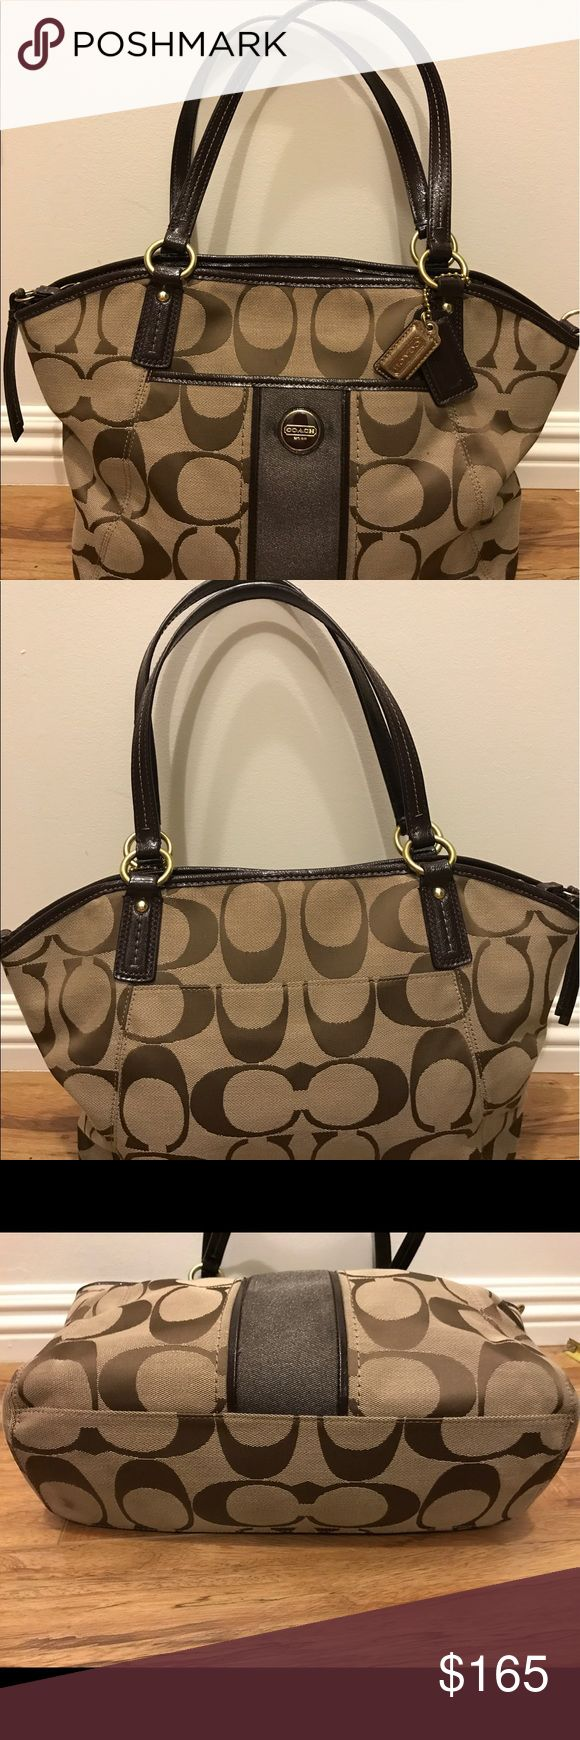 Coach Brown Purse/ Shoulder bag and Crossbody Authentic Coach Purse, Very Gently Used in Excellent Condition, no damage and clean Coach Bags Shoulder Bags